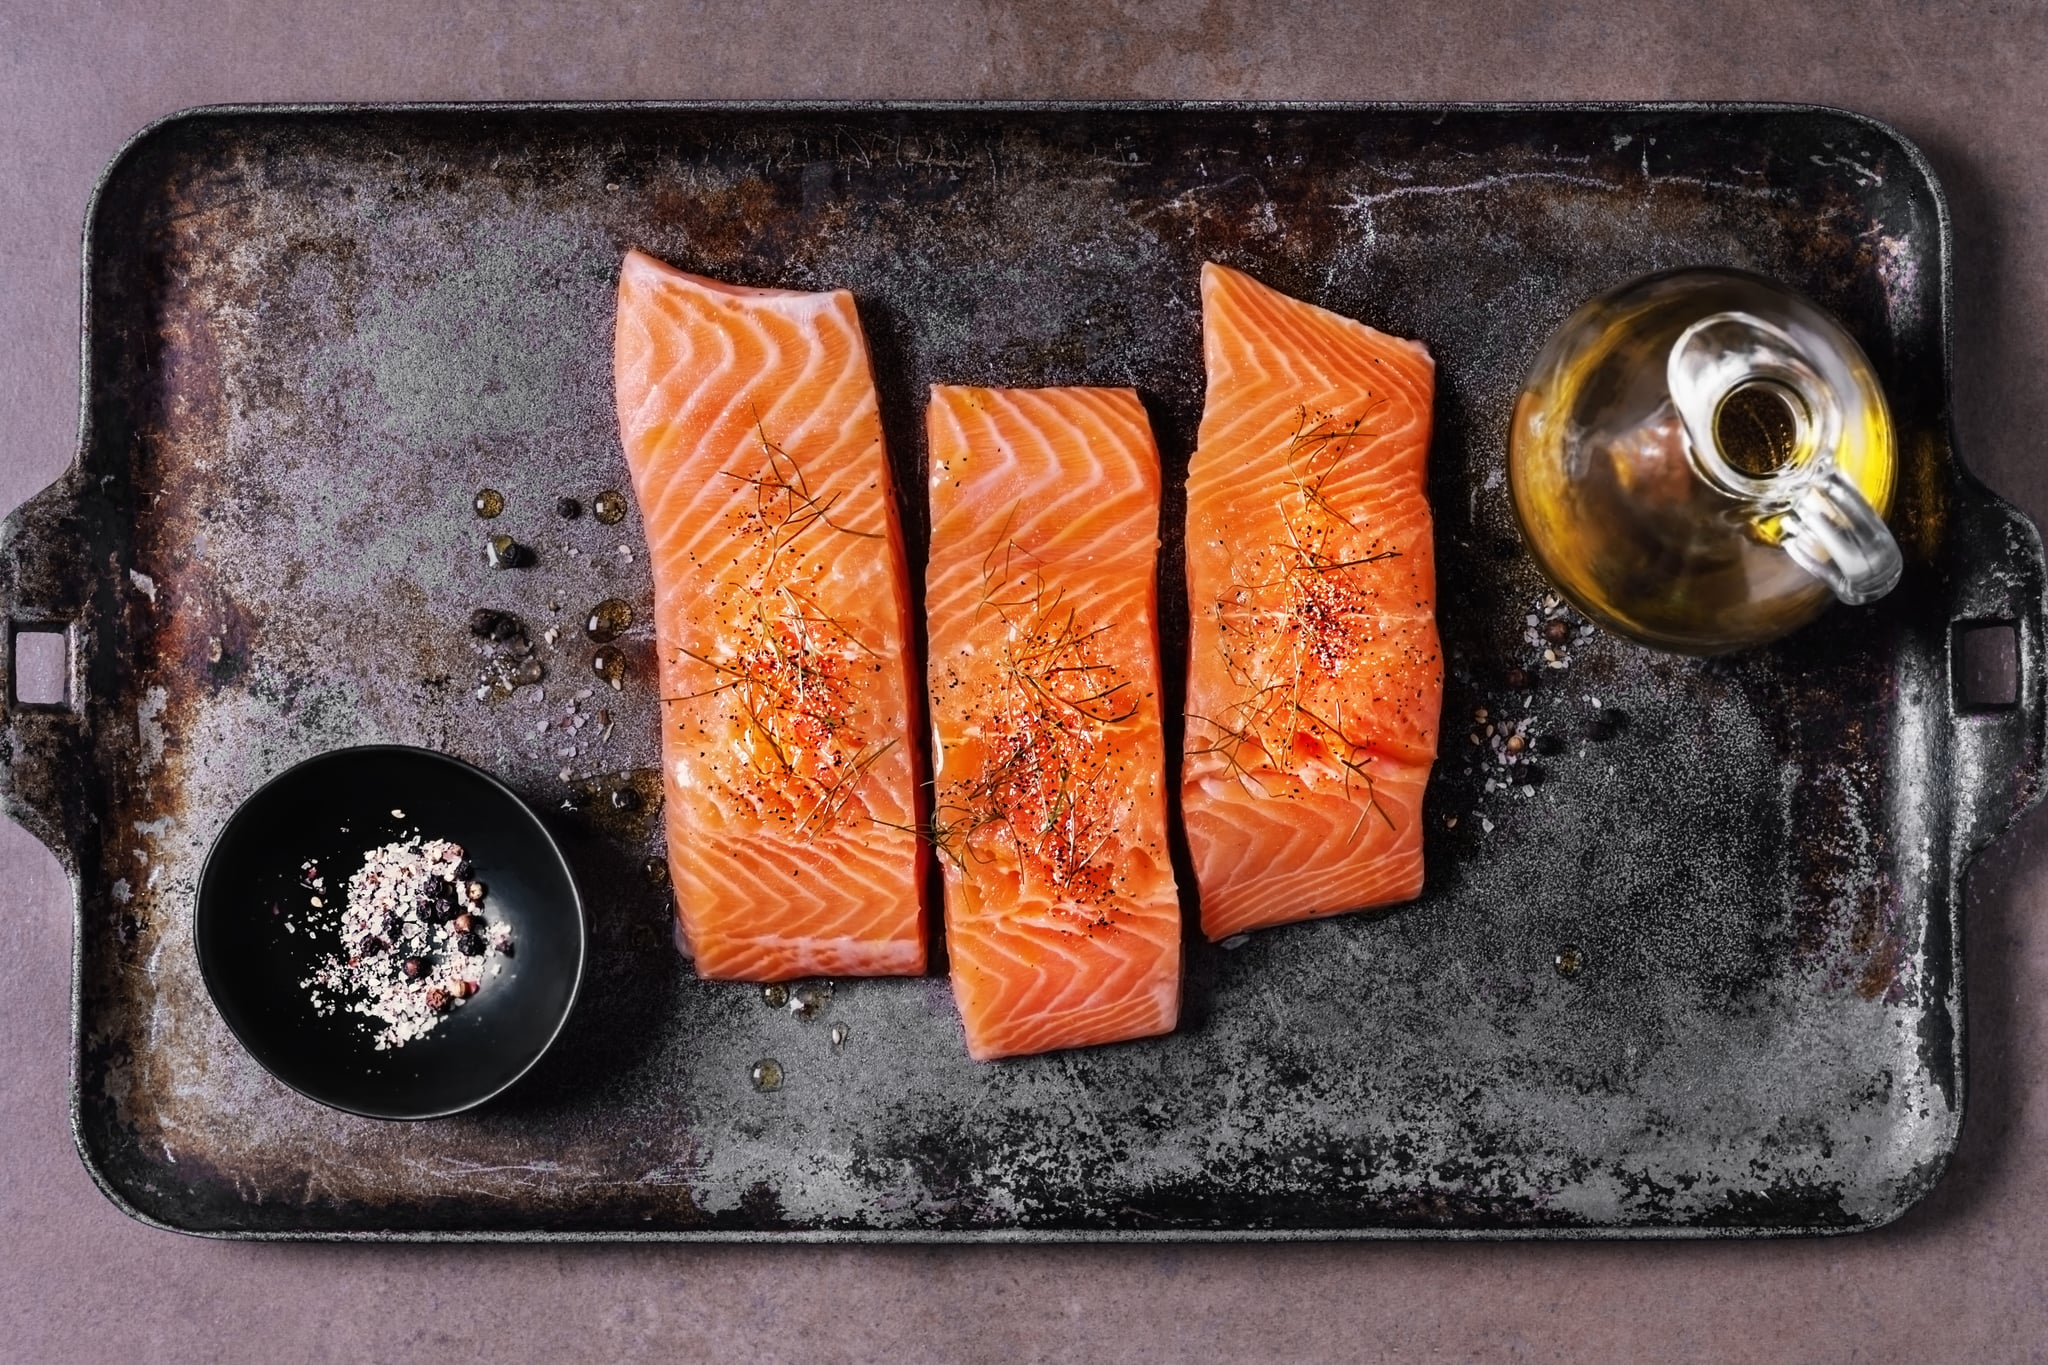 Slices of fresh salmon with spices and olive oil on a metal tray